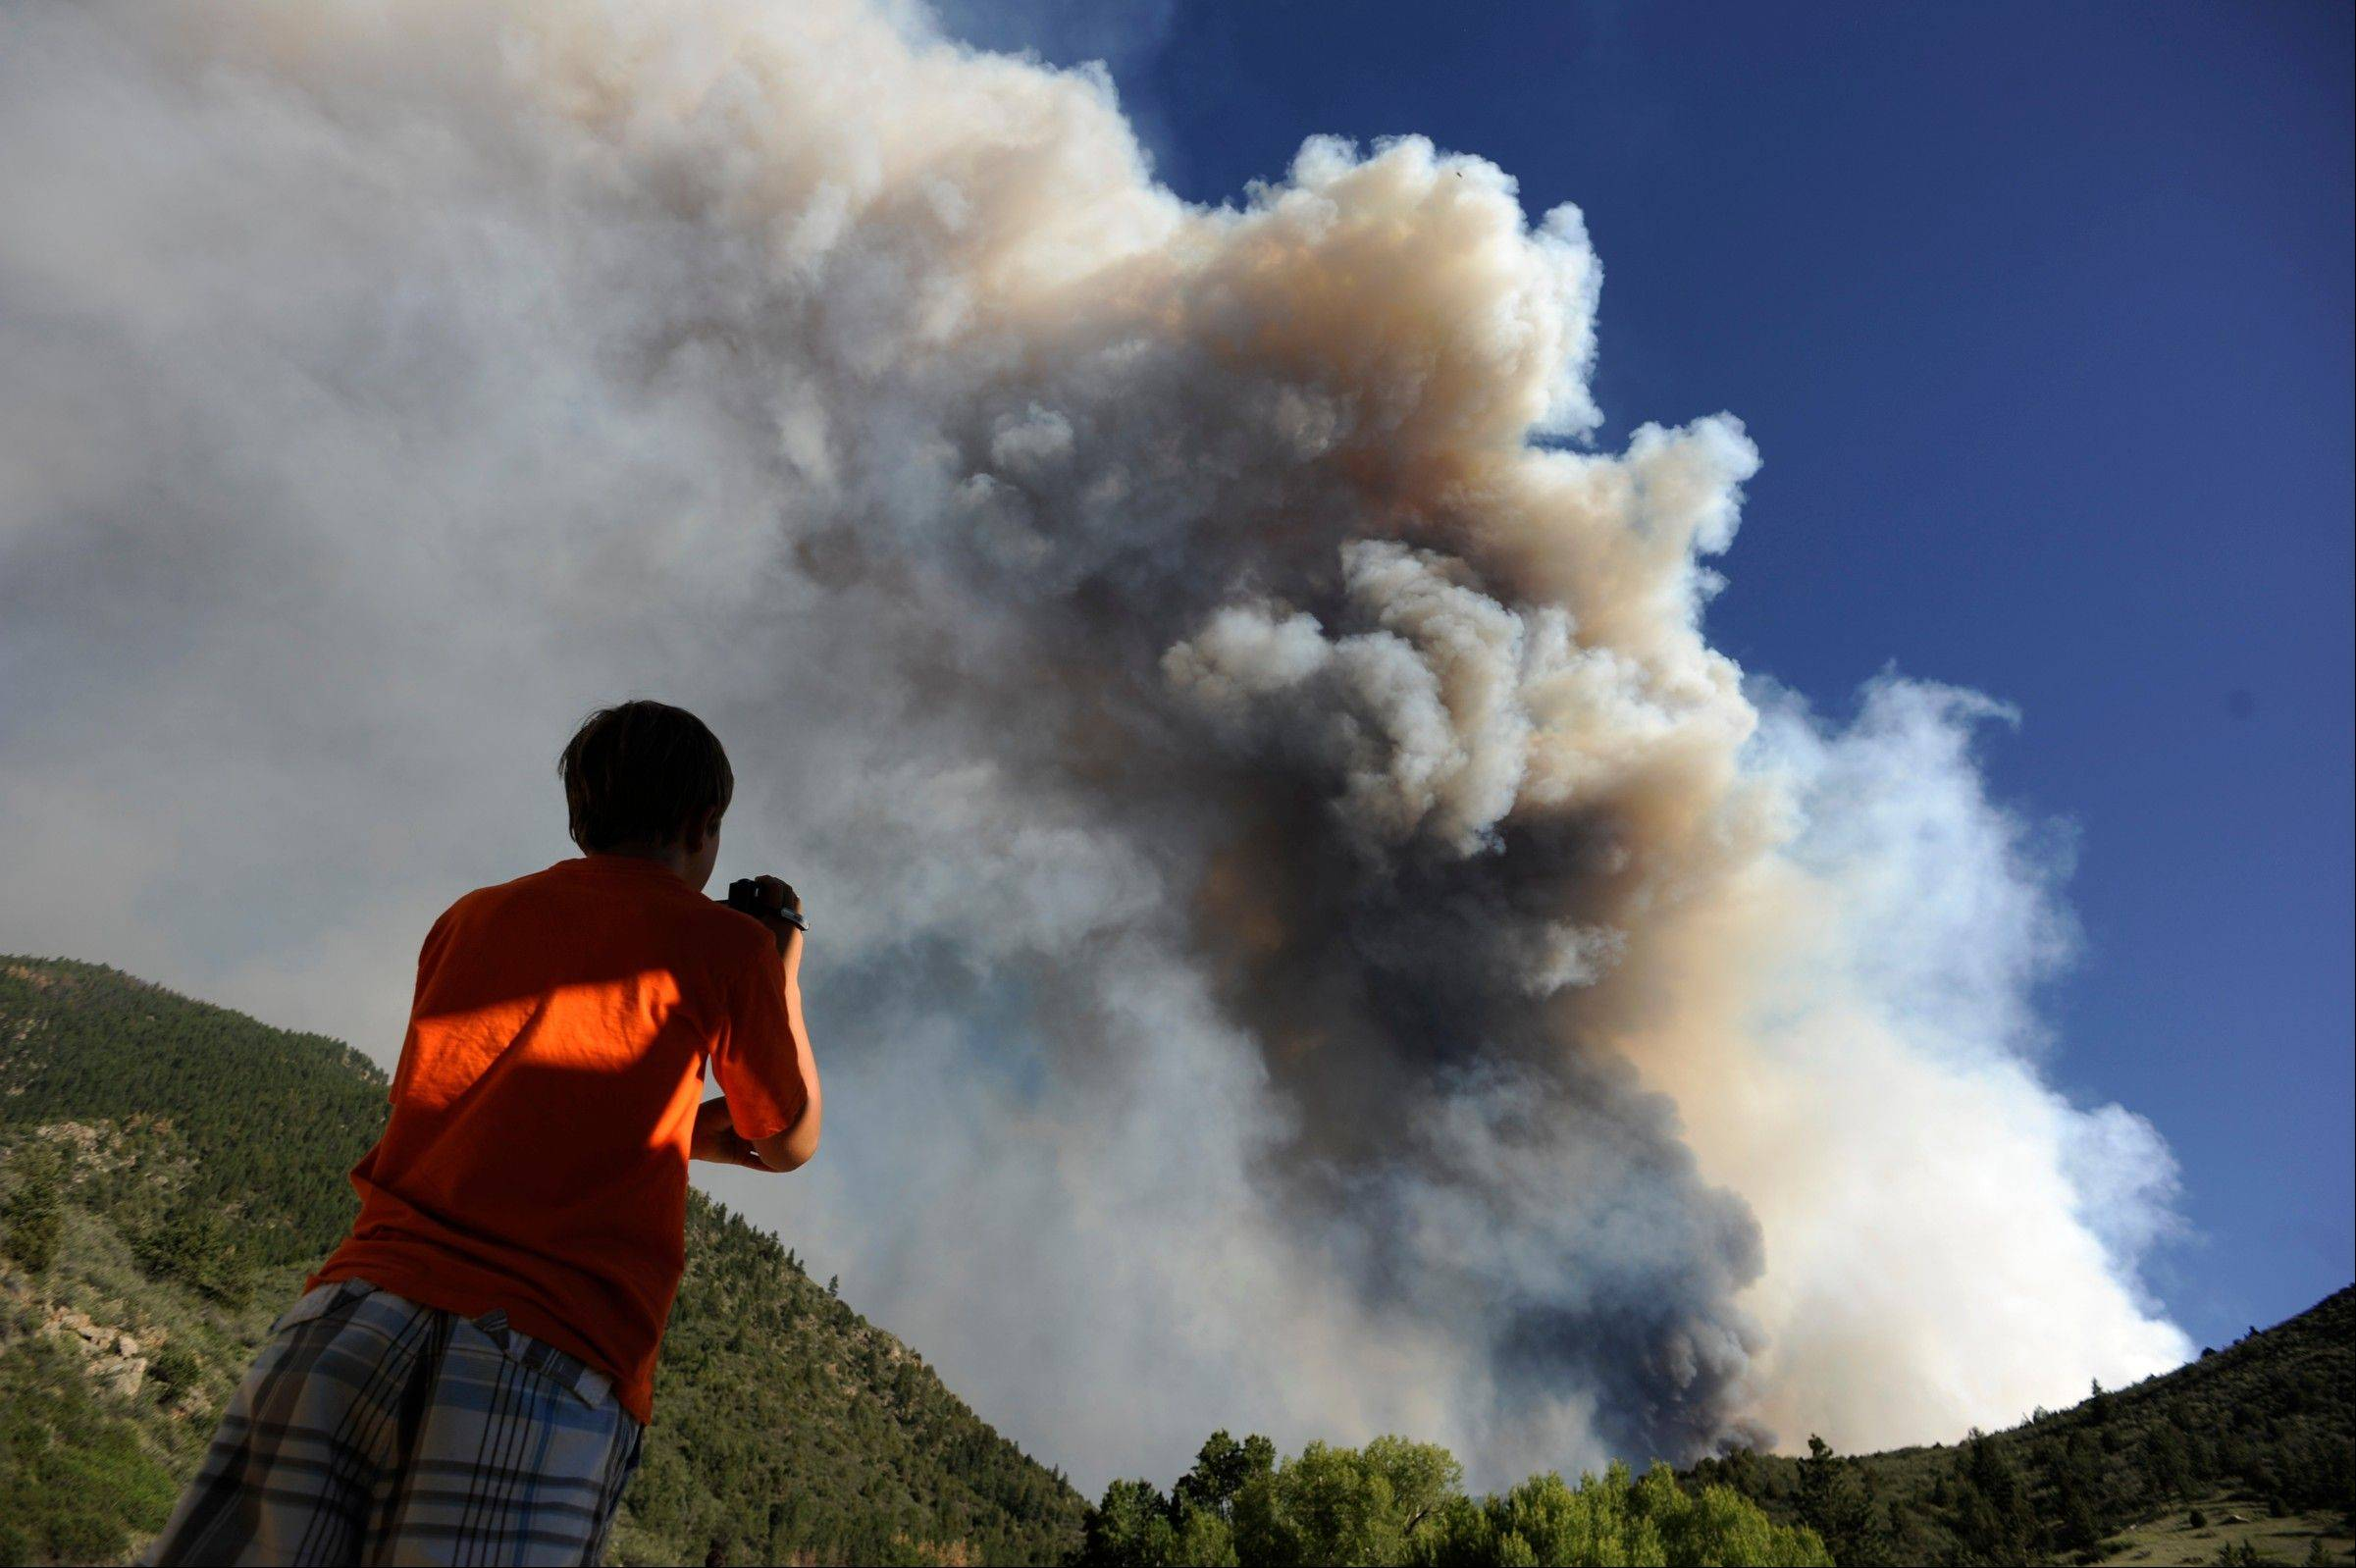 In this Saturday, June 9, 2012 photo, Zachary Brumley, 12, from Windsor, photographs a giant smoke plume as it rises above the flames as the fire crests a hillside south of the Cache La Poudre River at the intersection of Larimer County Road 27 and Colorado Highway 14, west of Fort Collins, Colo.